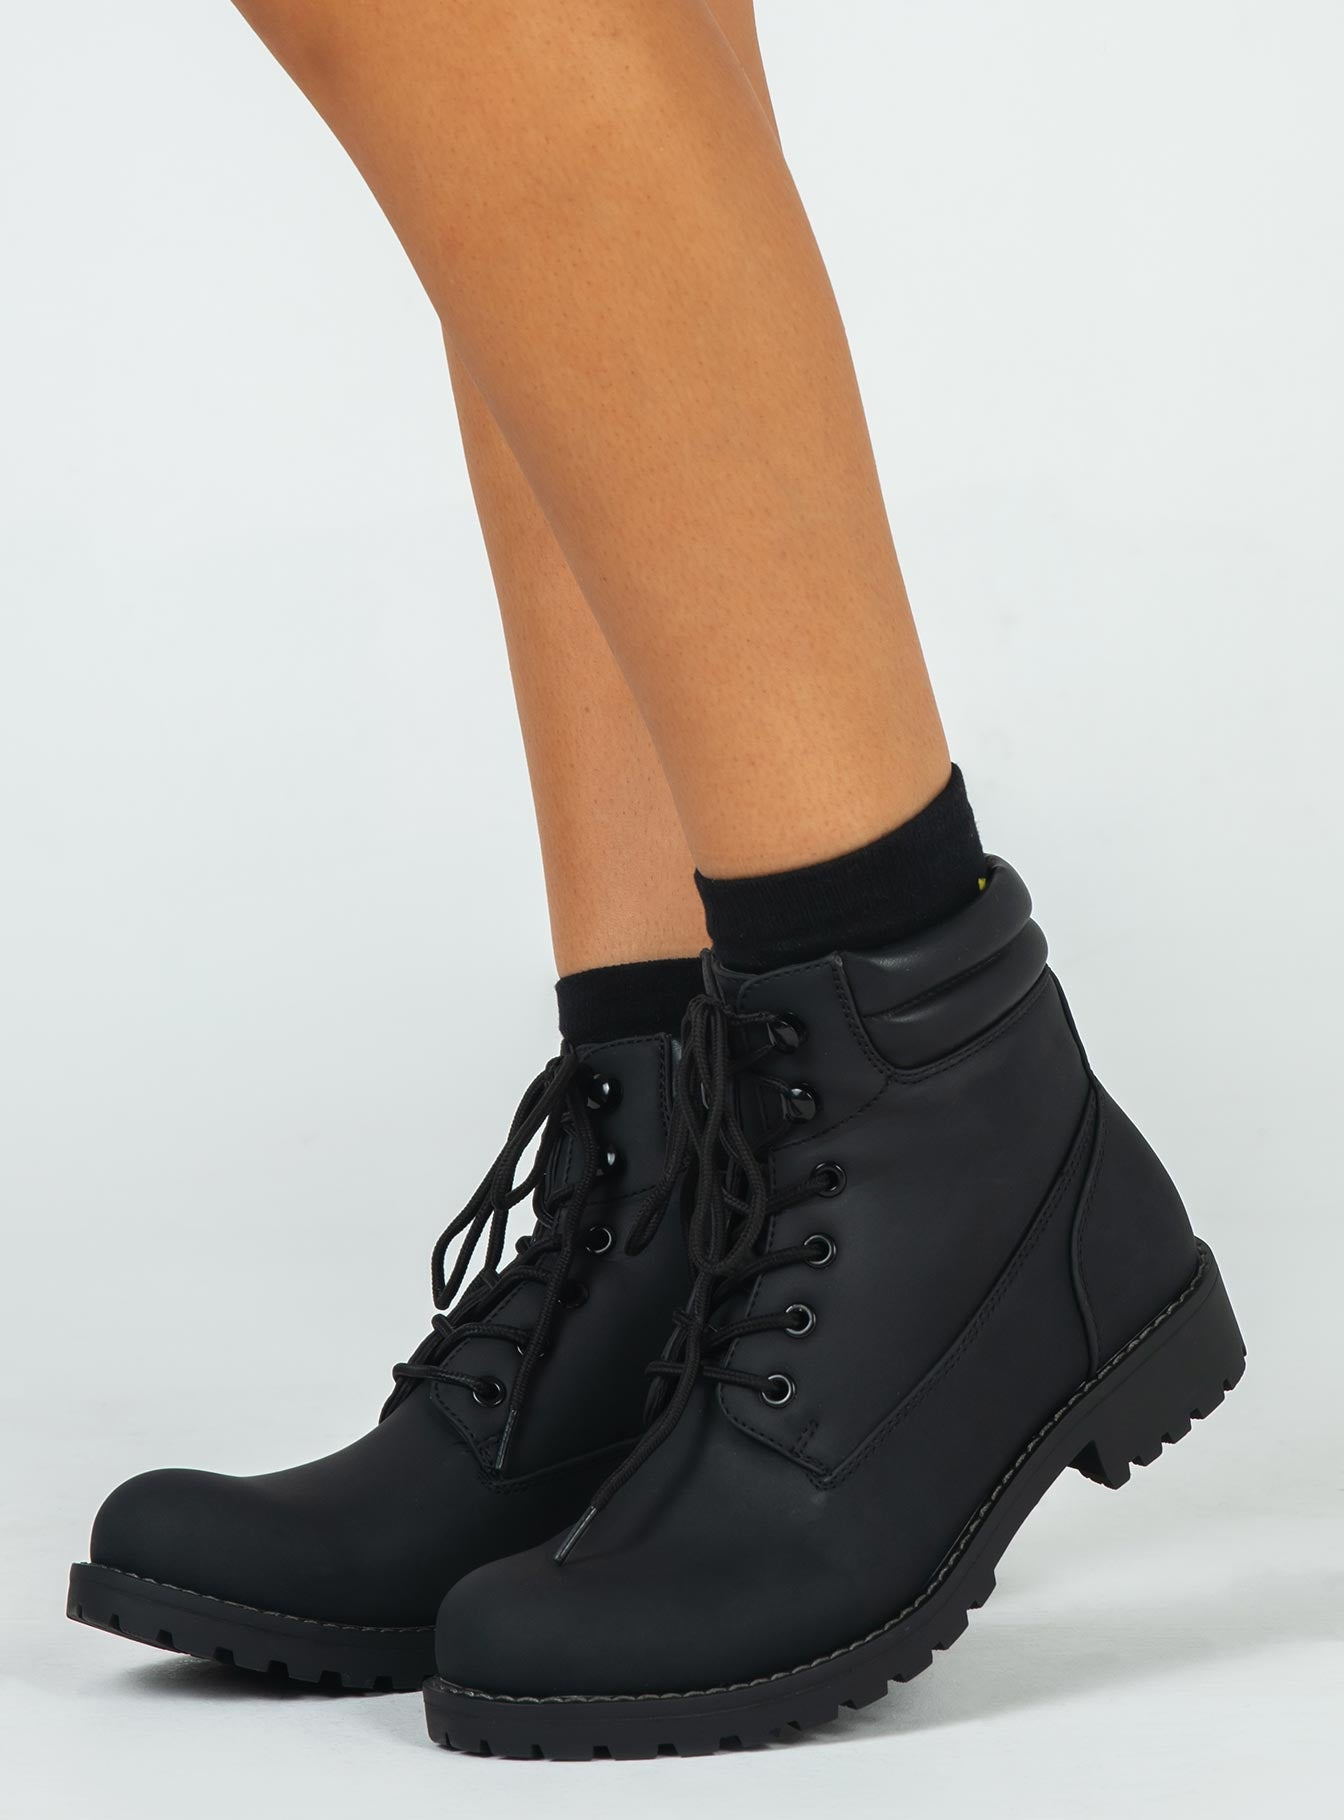 Therapy Drew Black Boots